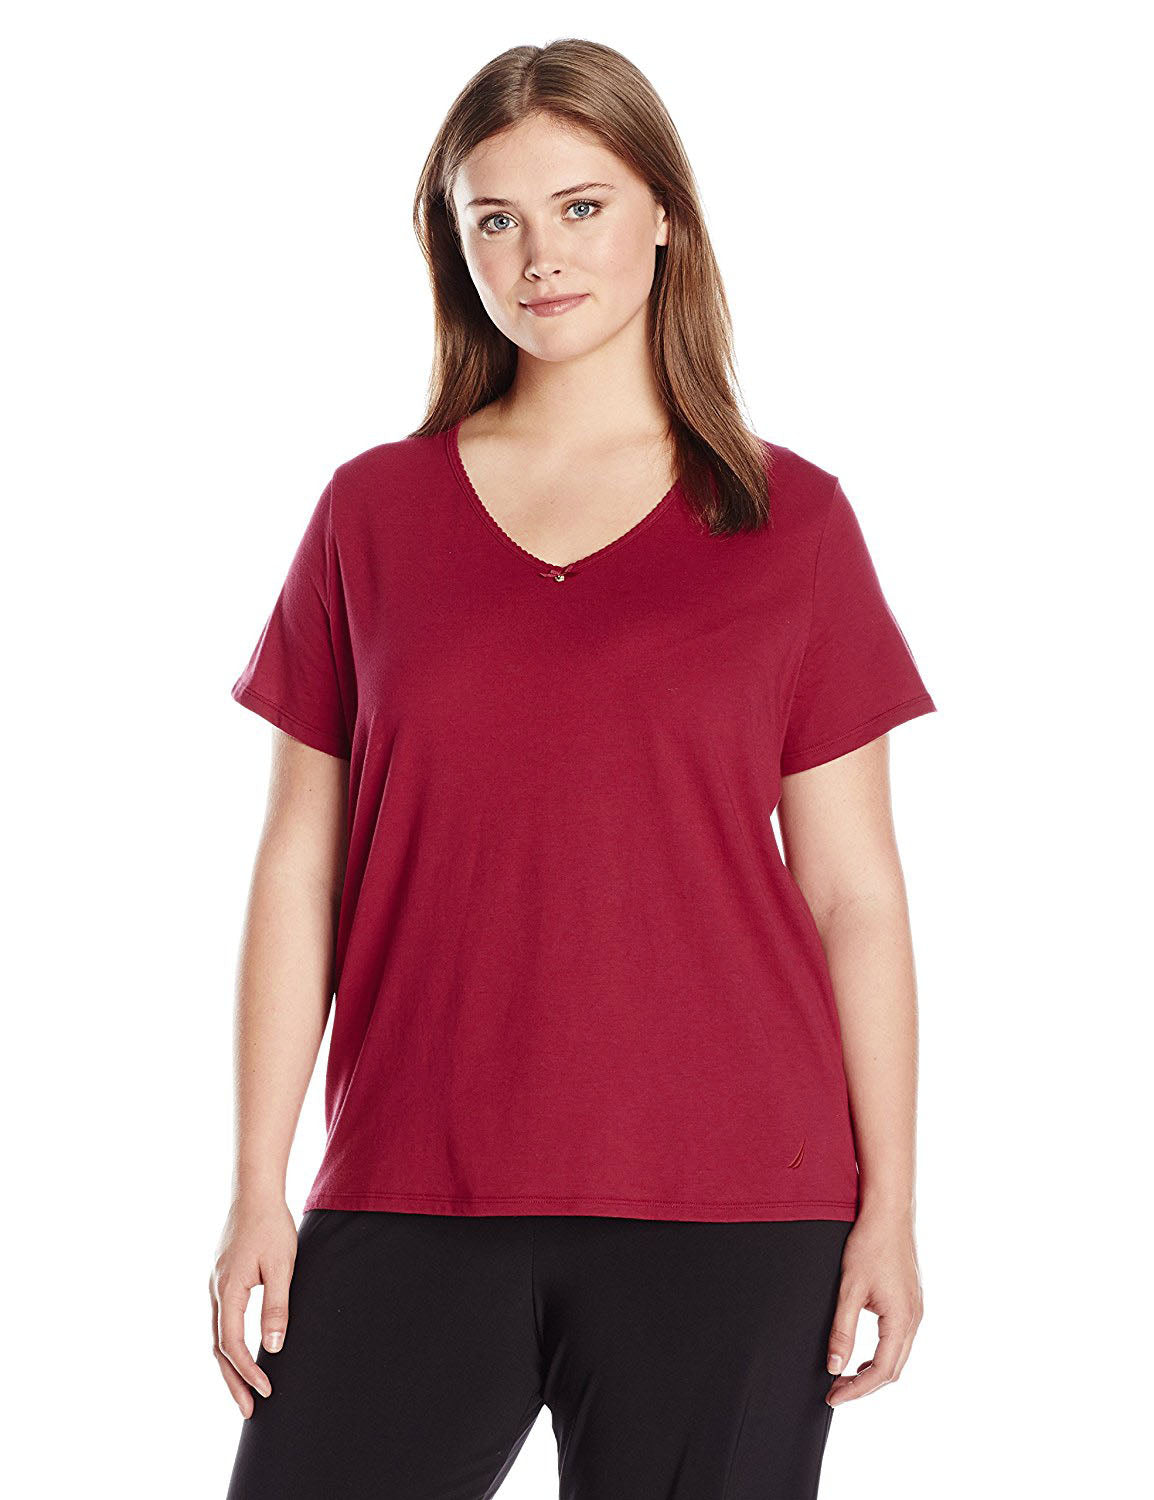 fcfd6d1ddfd Nautica Women s Plus Size V-Neck Pajama T-Shirt – Retail Trunk